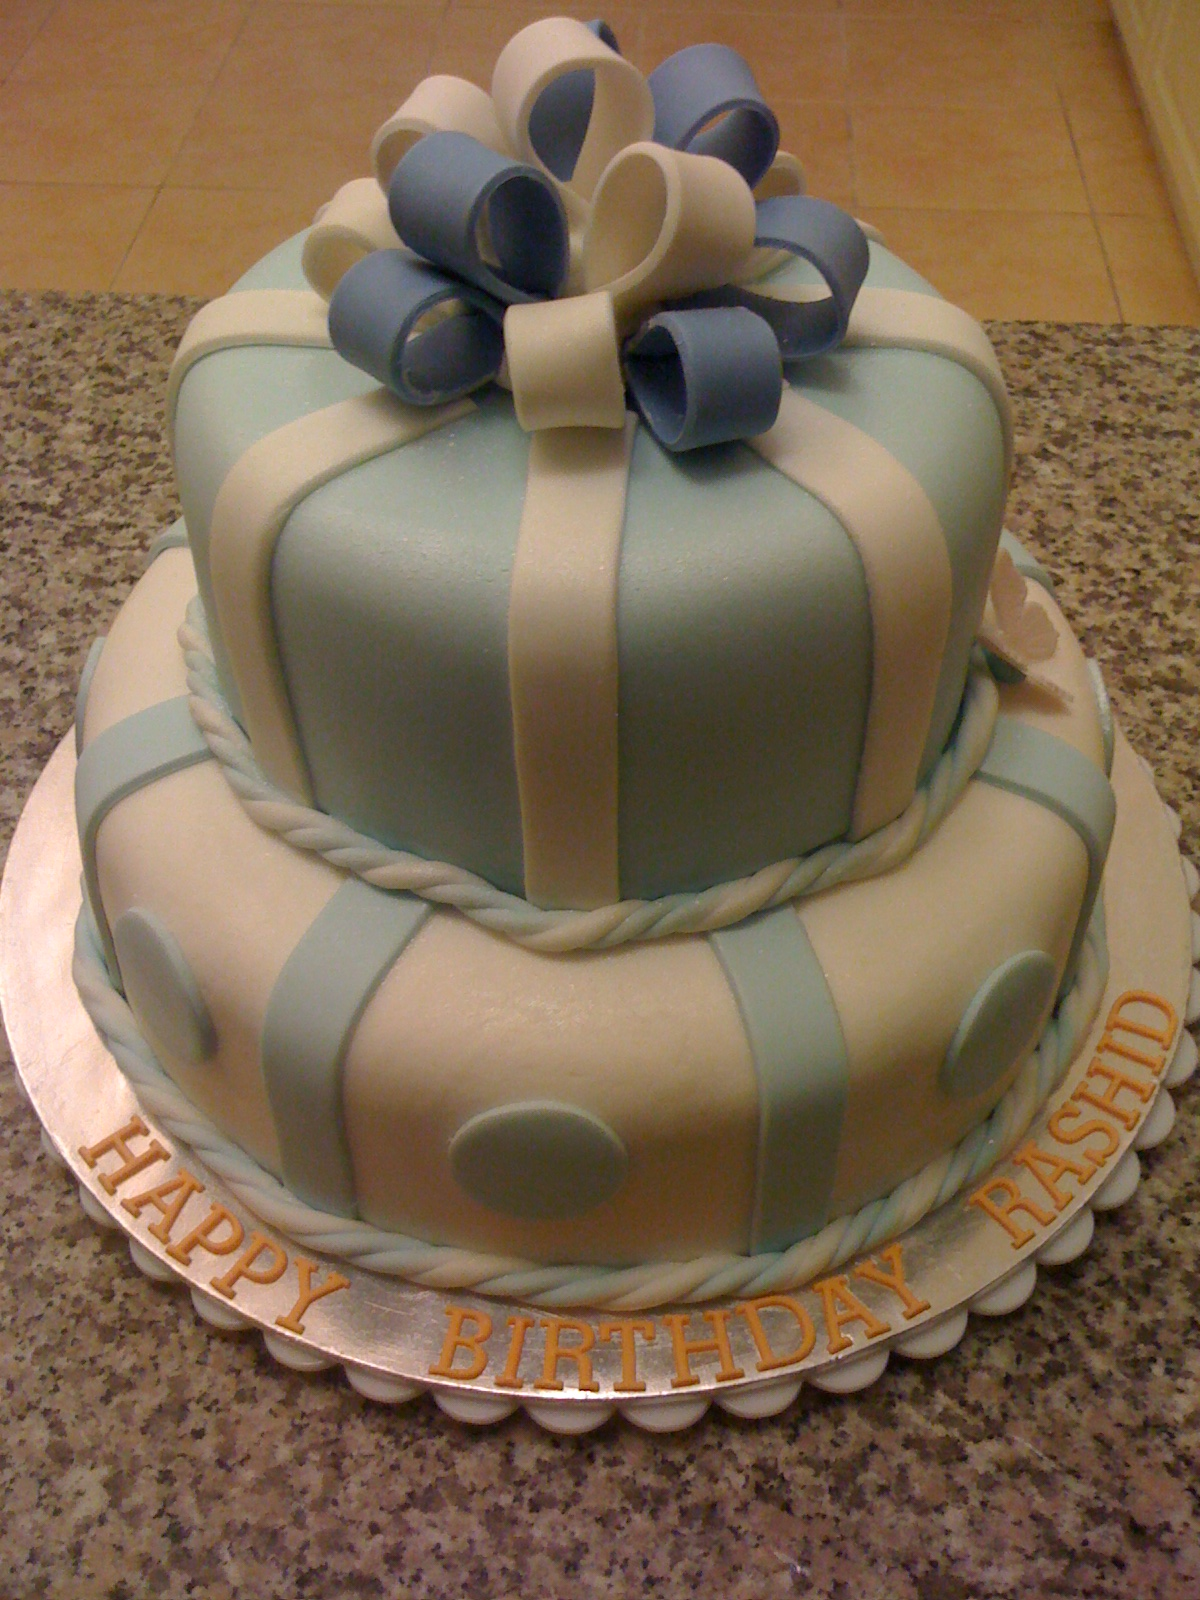 CAKE CUPBOARD 2 Tier Birthday cake light blue and white